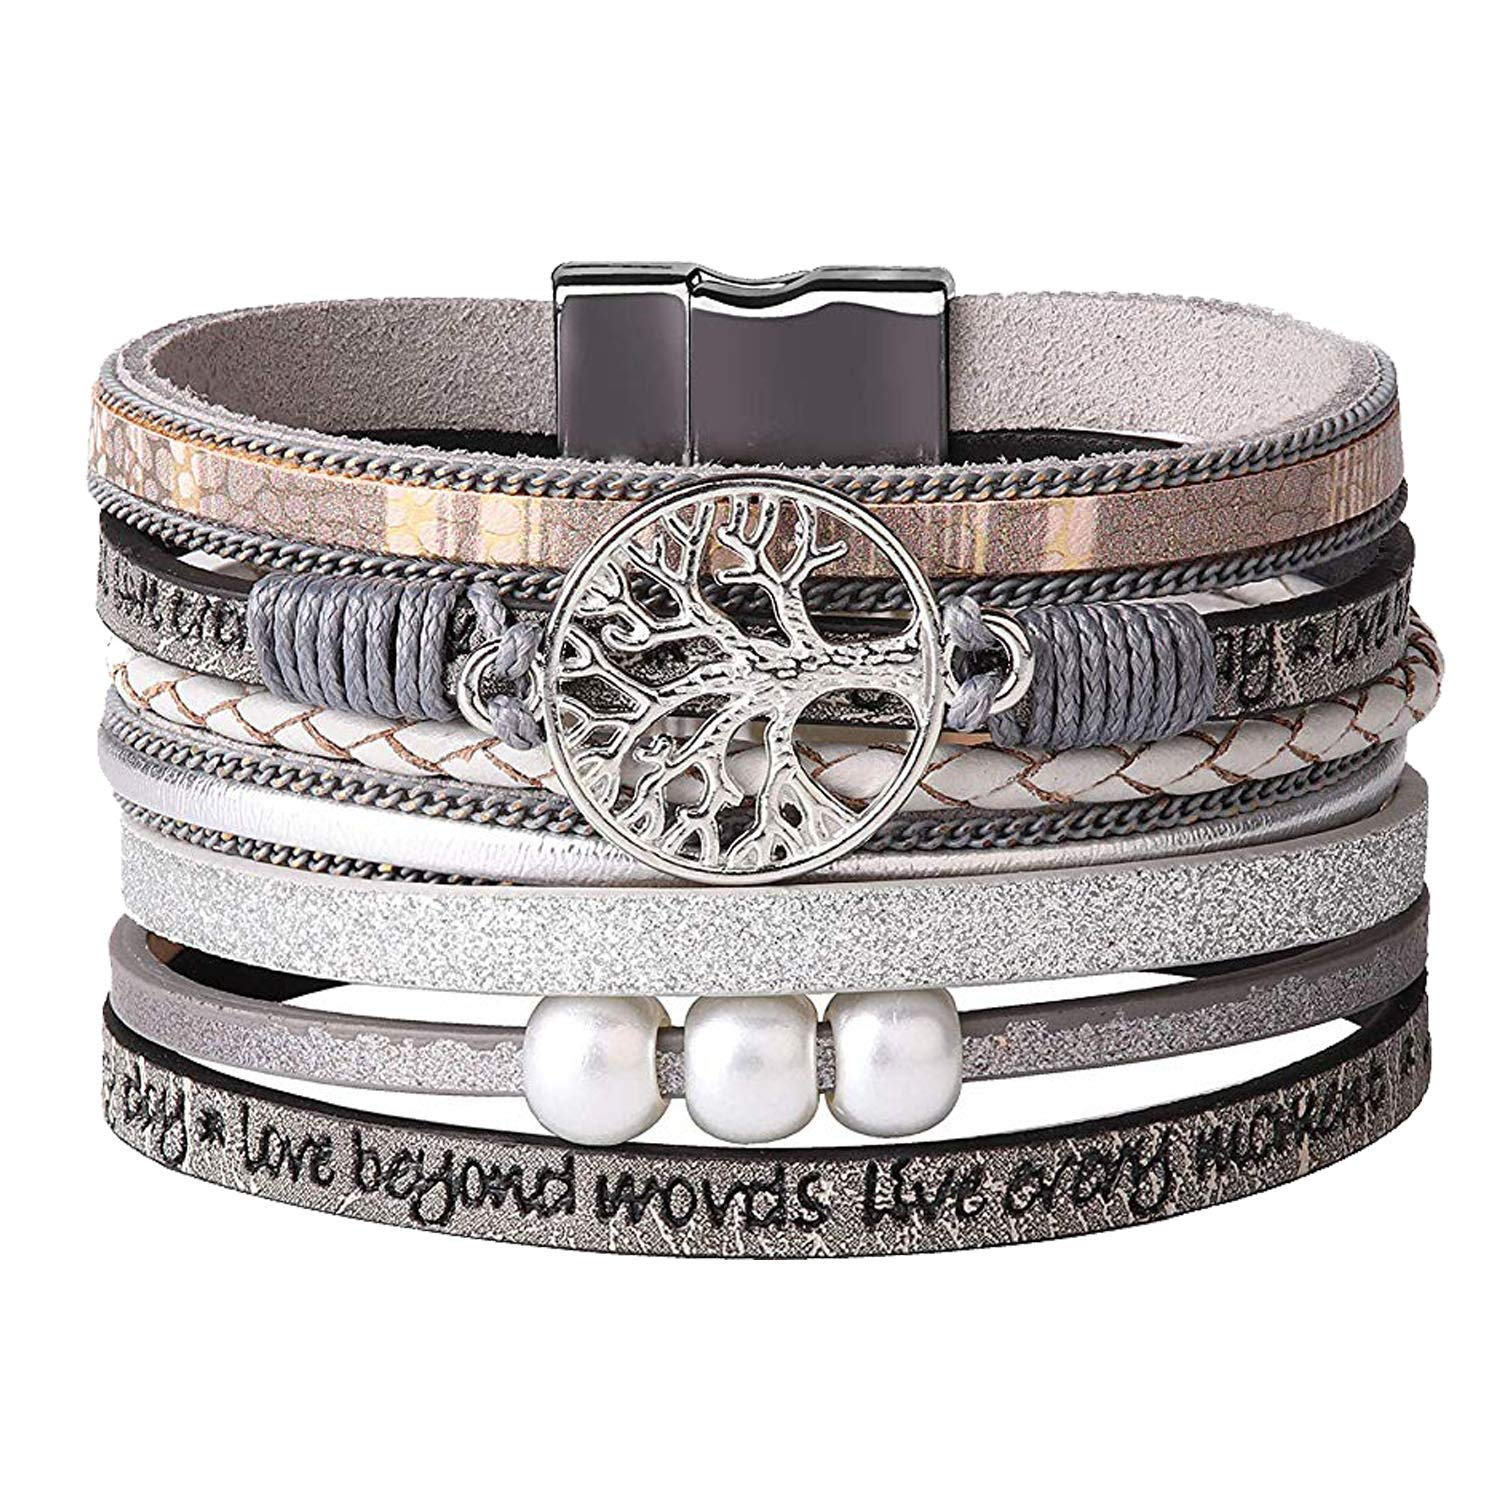 KSQS Tree of Life Multilayer Leather Wrap Bracelets,Boho Pearl Gorgeous Cuff Bracelet with Magnetic Buckle,Casual Bangle for Women&Girl by KSQS